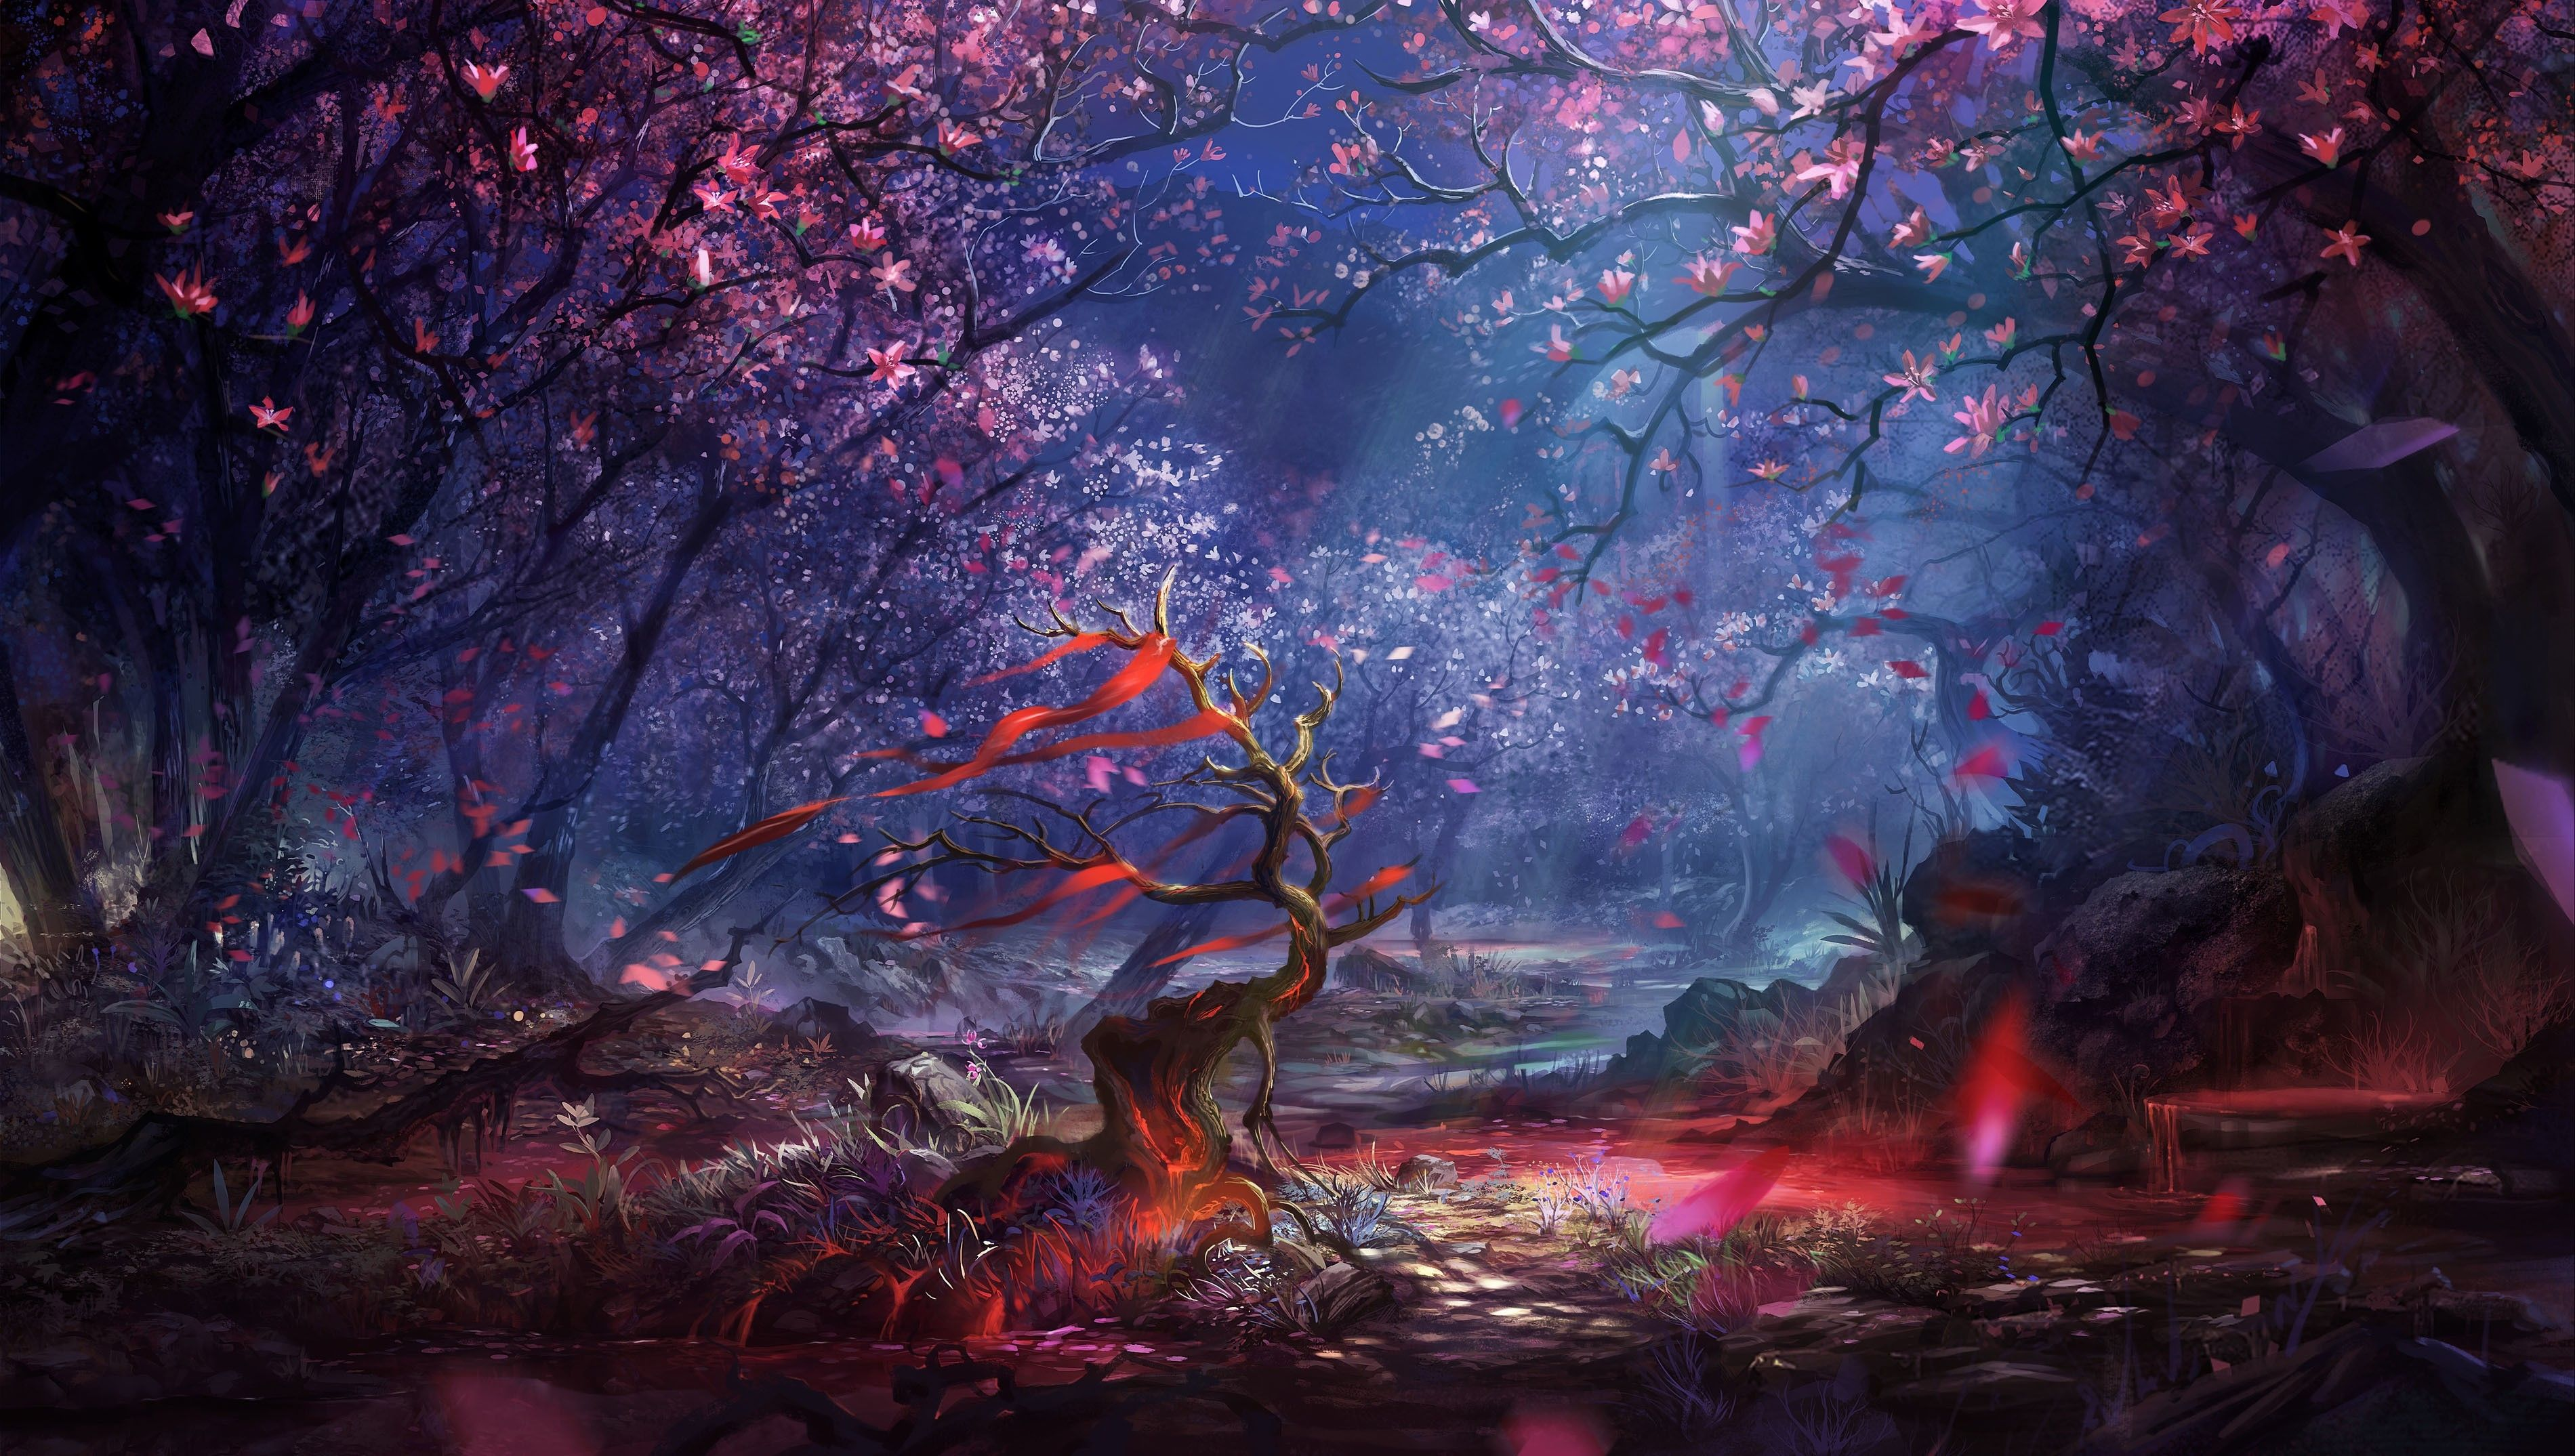 Fantasy Forest Wallpaper Picture For Background Px KB Animation Dragon Water Rider Winter